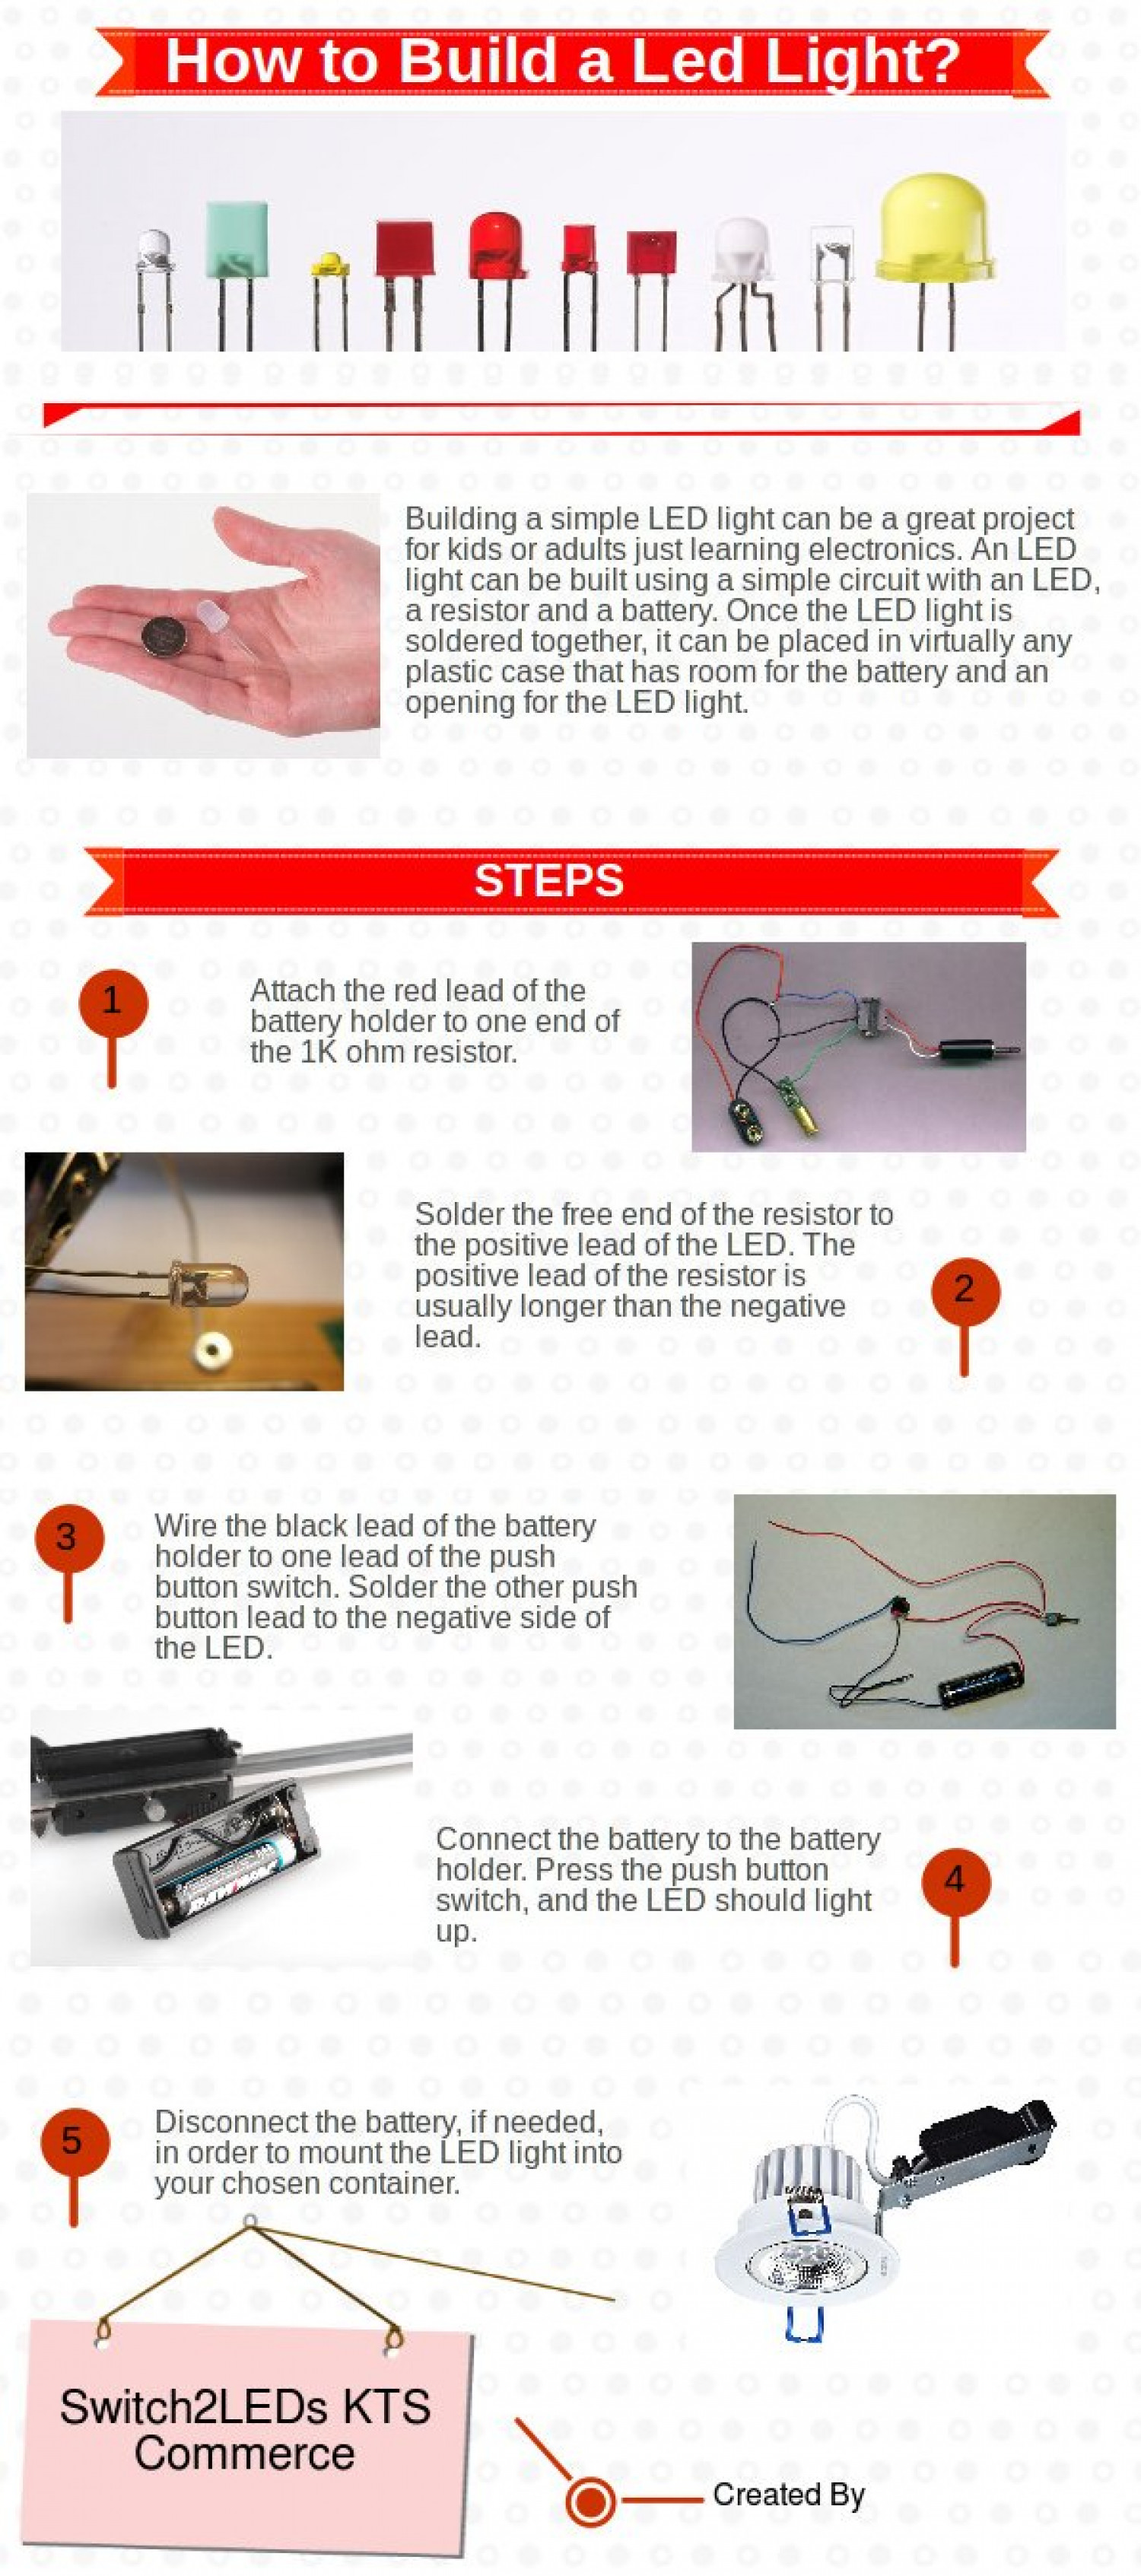 How to Build a LED Light? Infographic